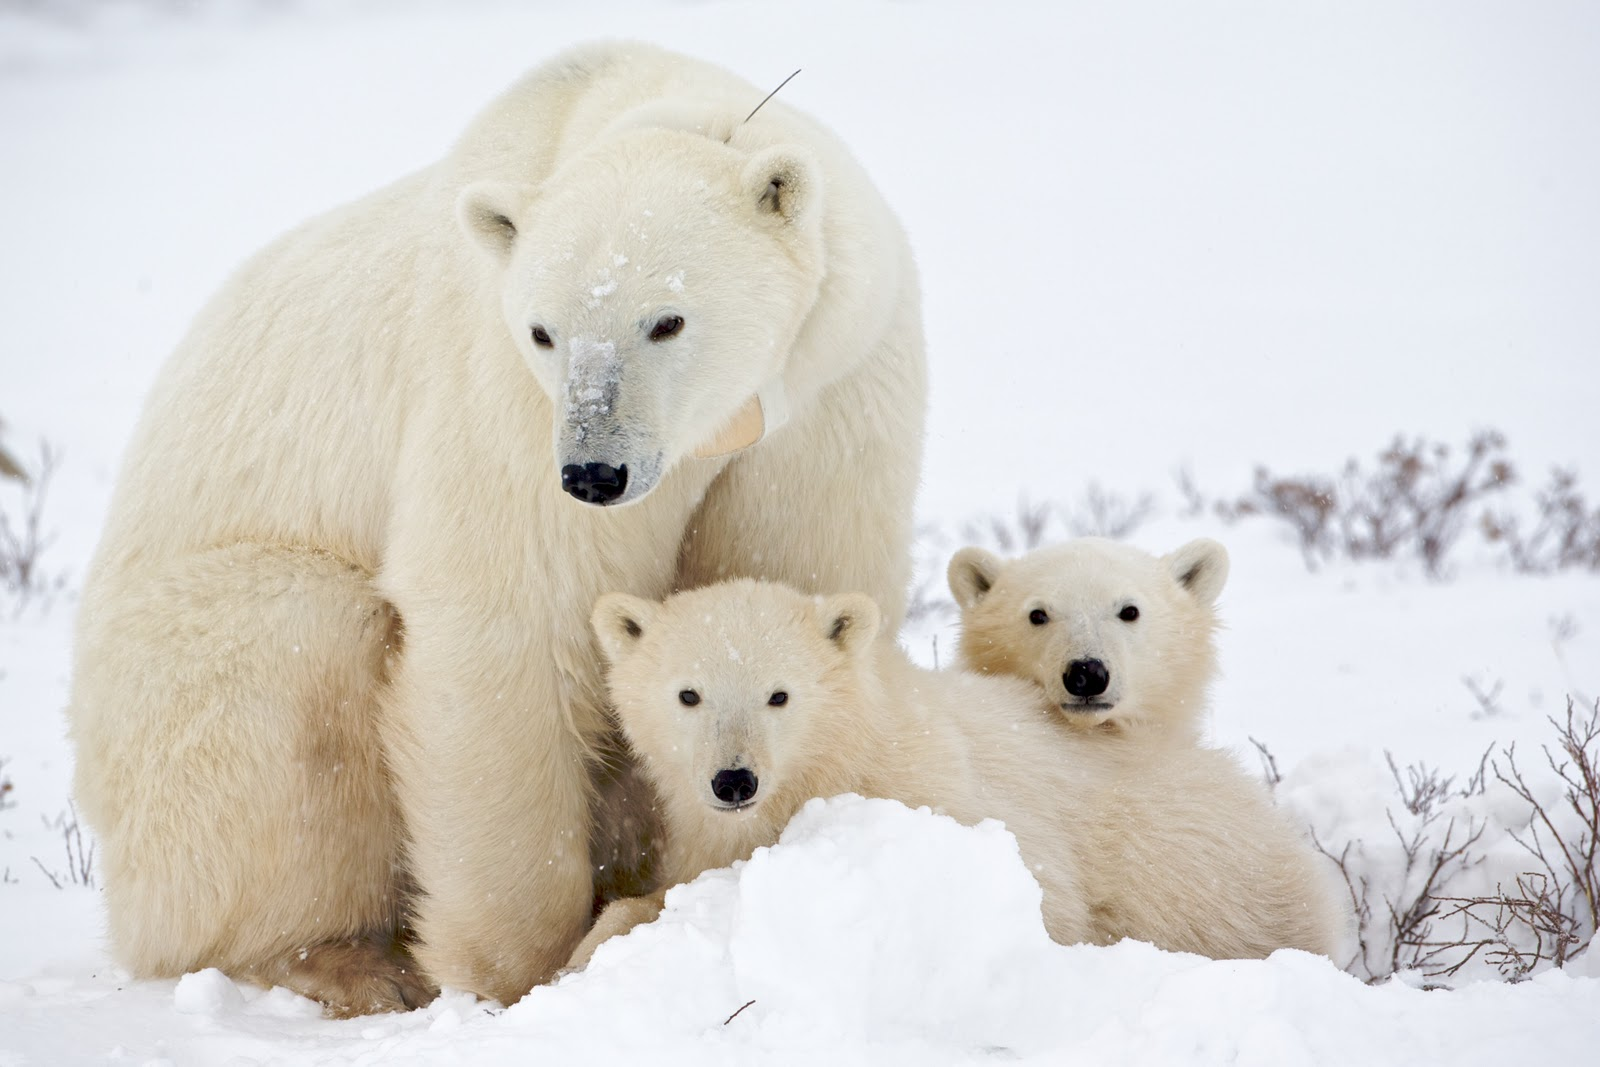 Polar Bears Images Cute Polar Bear! ♡ HD Wallpaper And